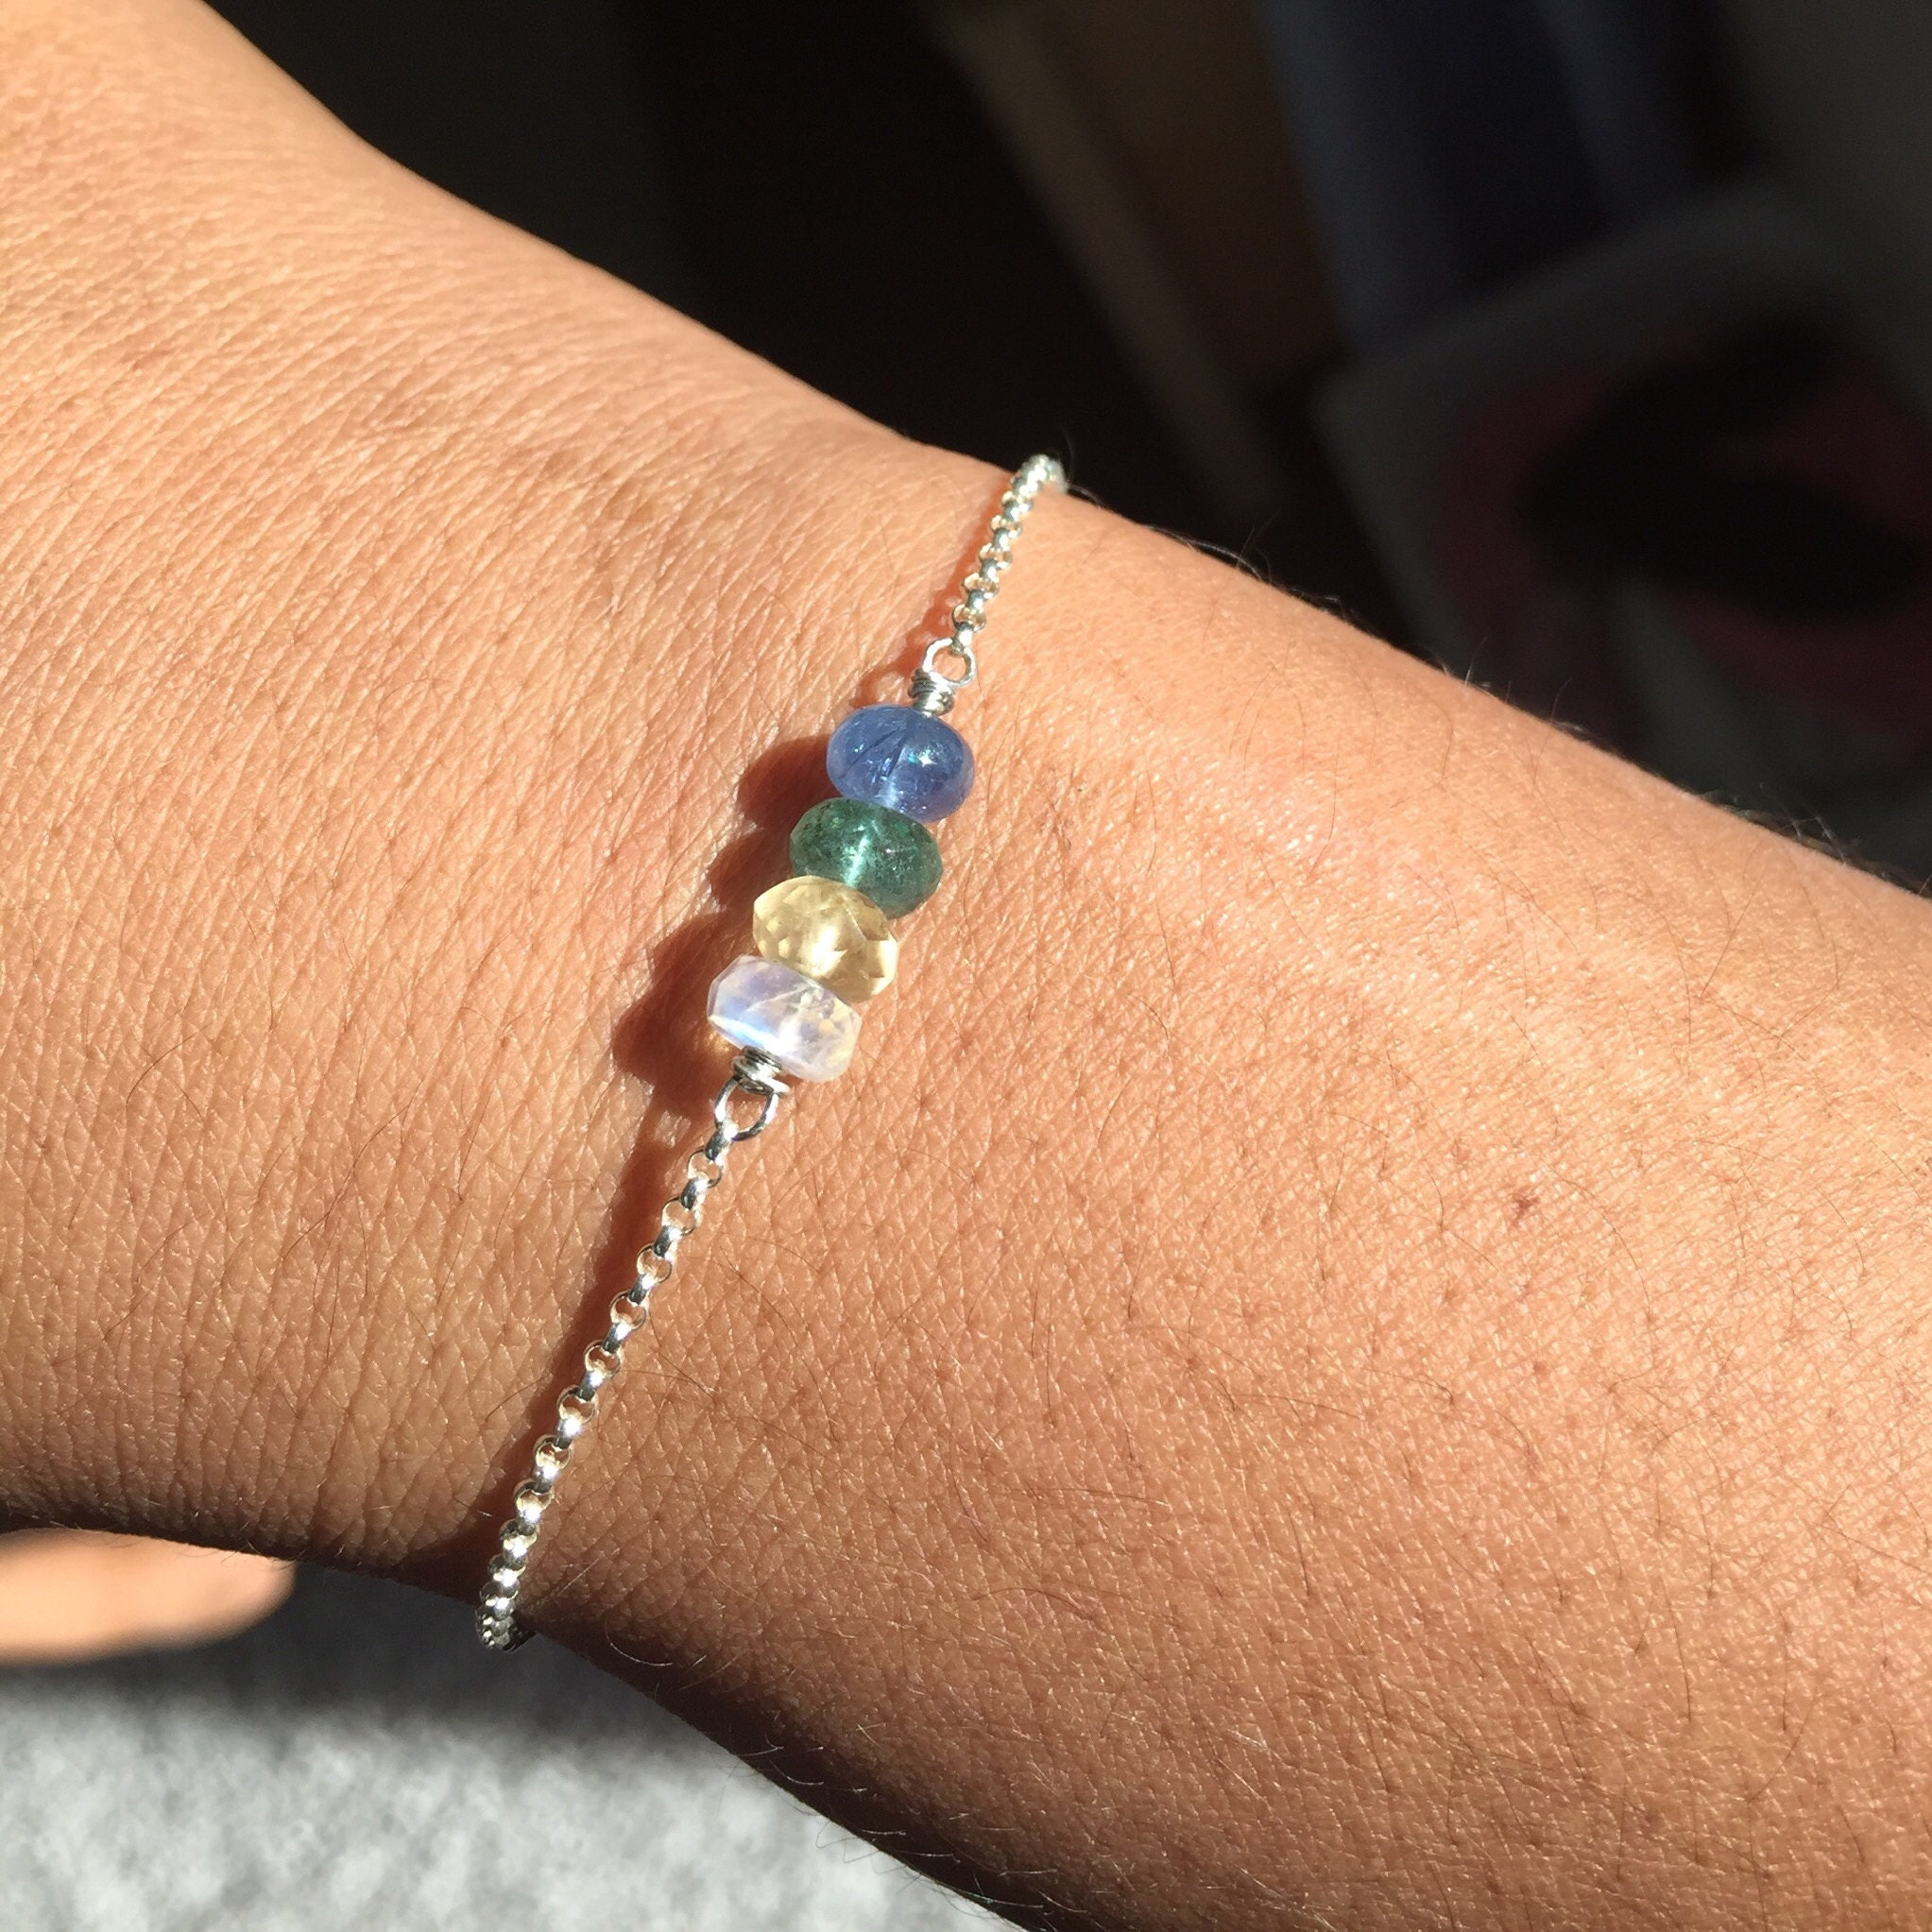 amysherdon added a photo of their purchase